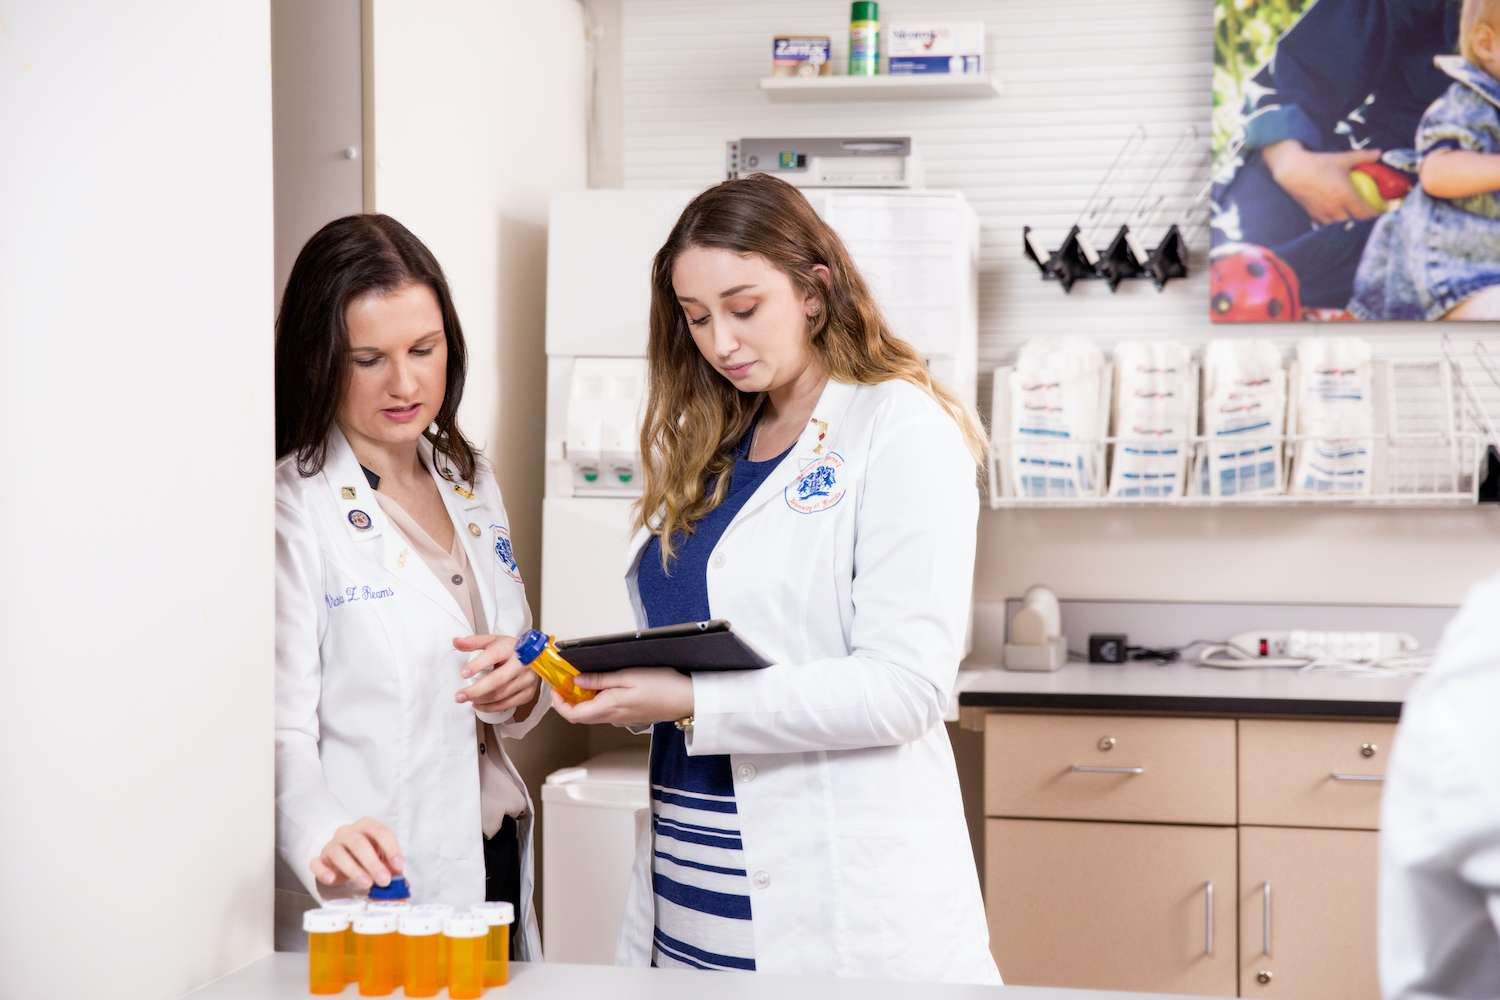 Student pharmacists consults with mentor in pharmacy